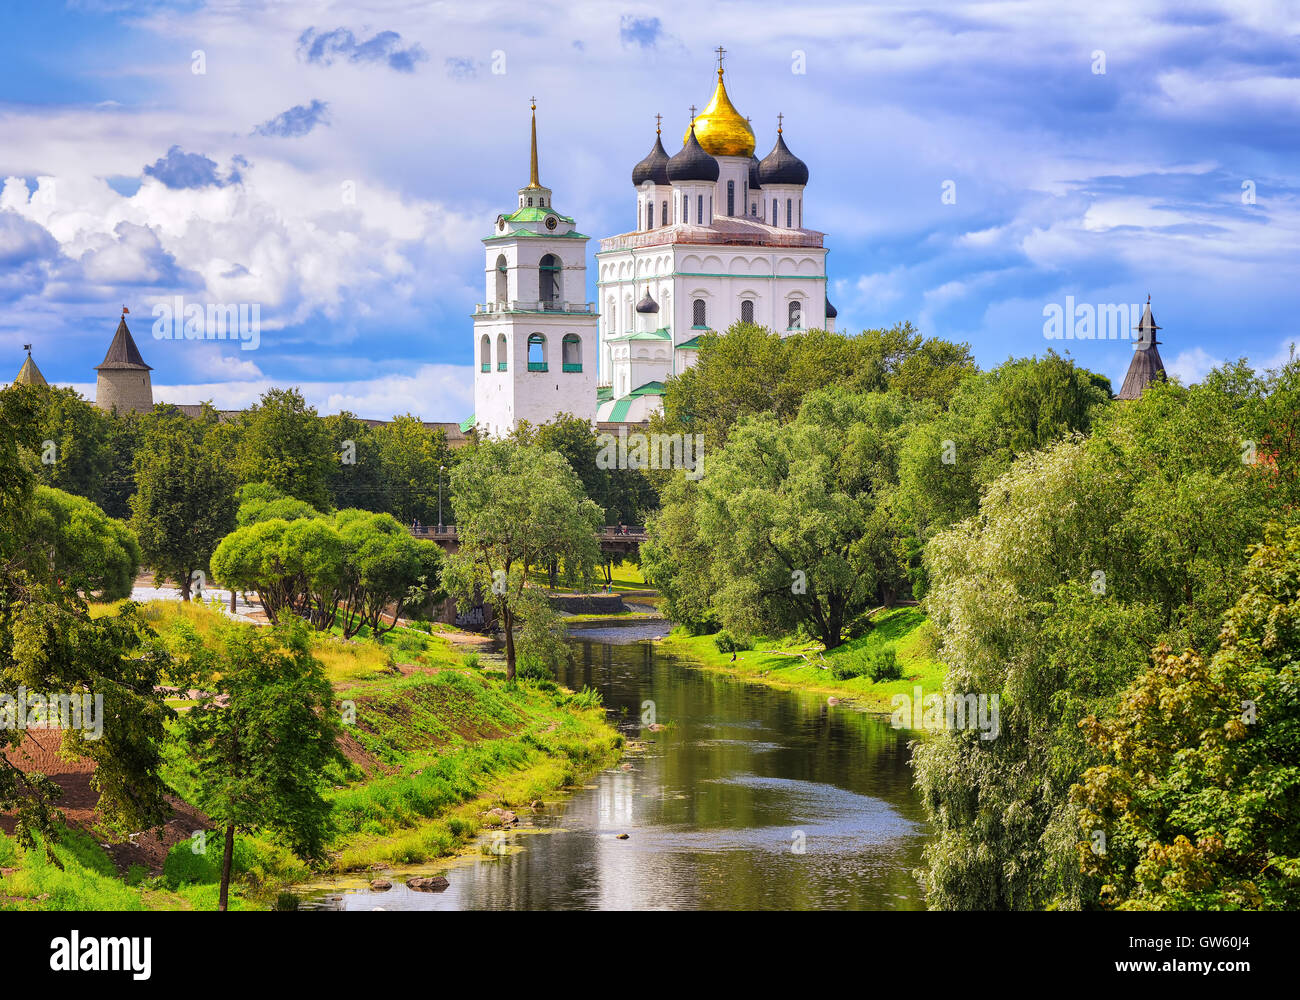 The golden dome of Trinity Church and towers of Pskov Kremlin (Krom) reflecting in the river, Pskov, Russia. - Stock Image